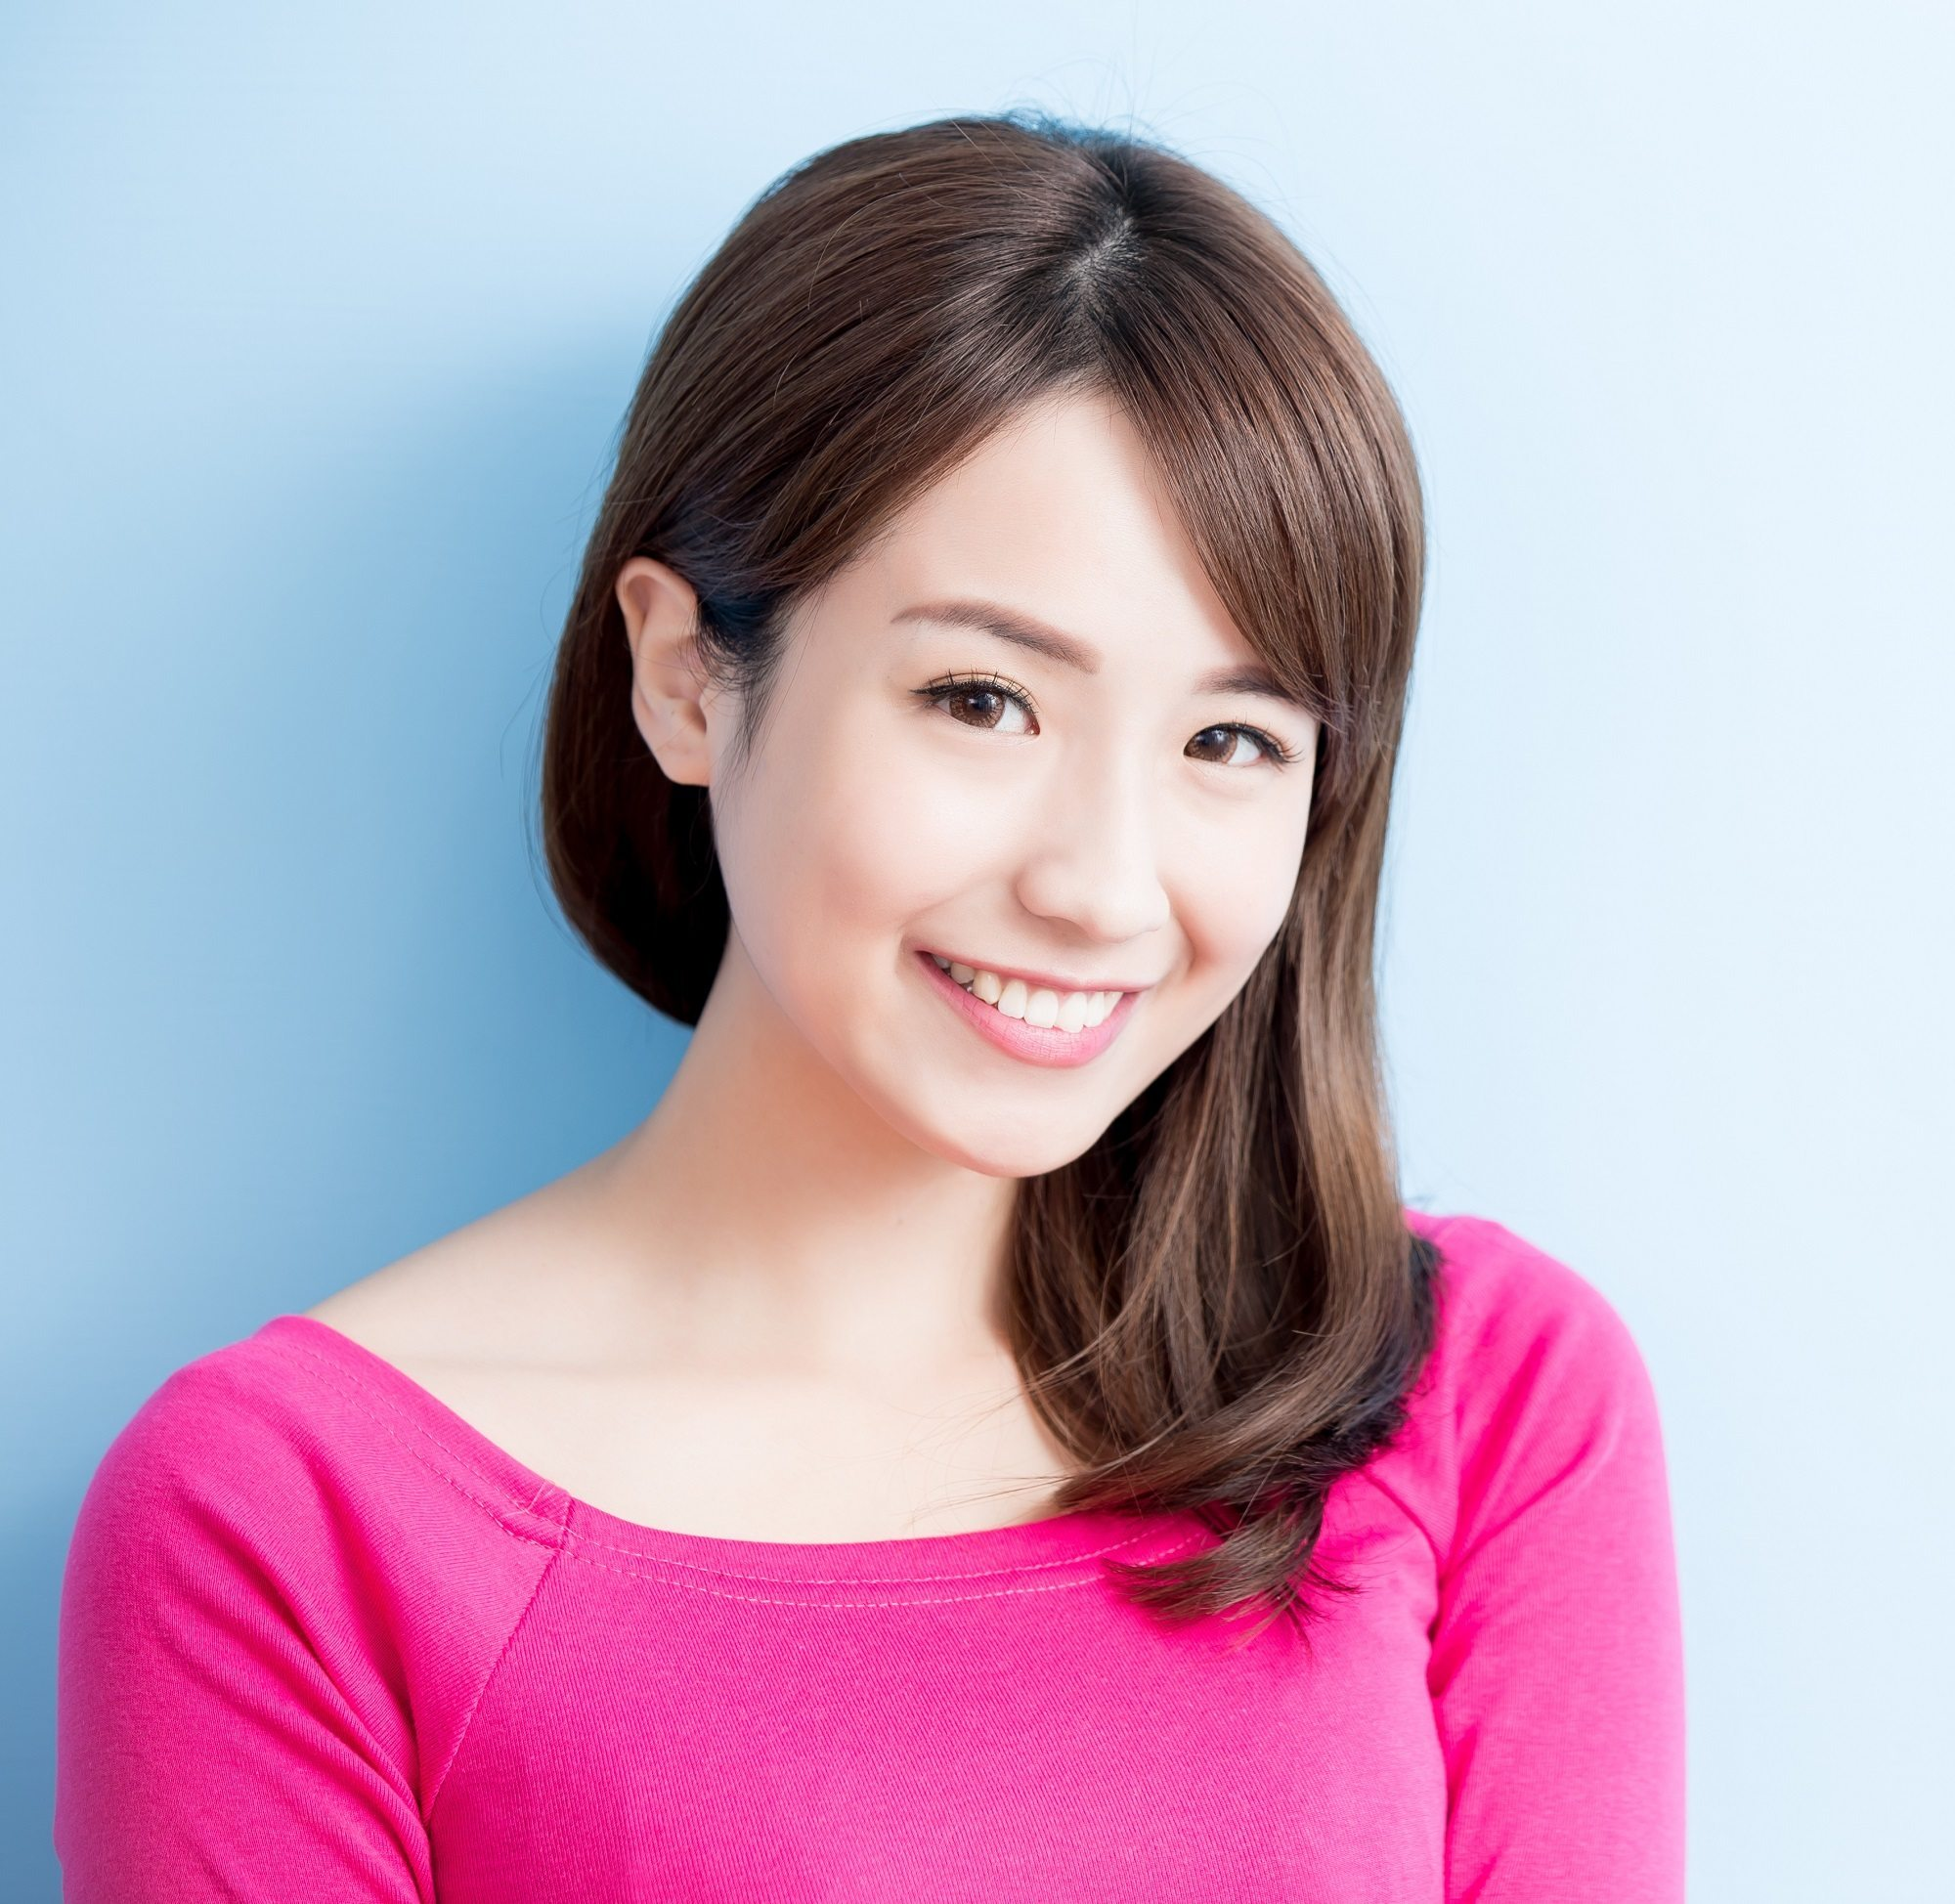 Long hair with side bangs: Closeup shot of Asian woman with shoulder-length brown hair with side bangs wearing a pink top against a blue background